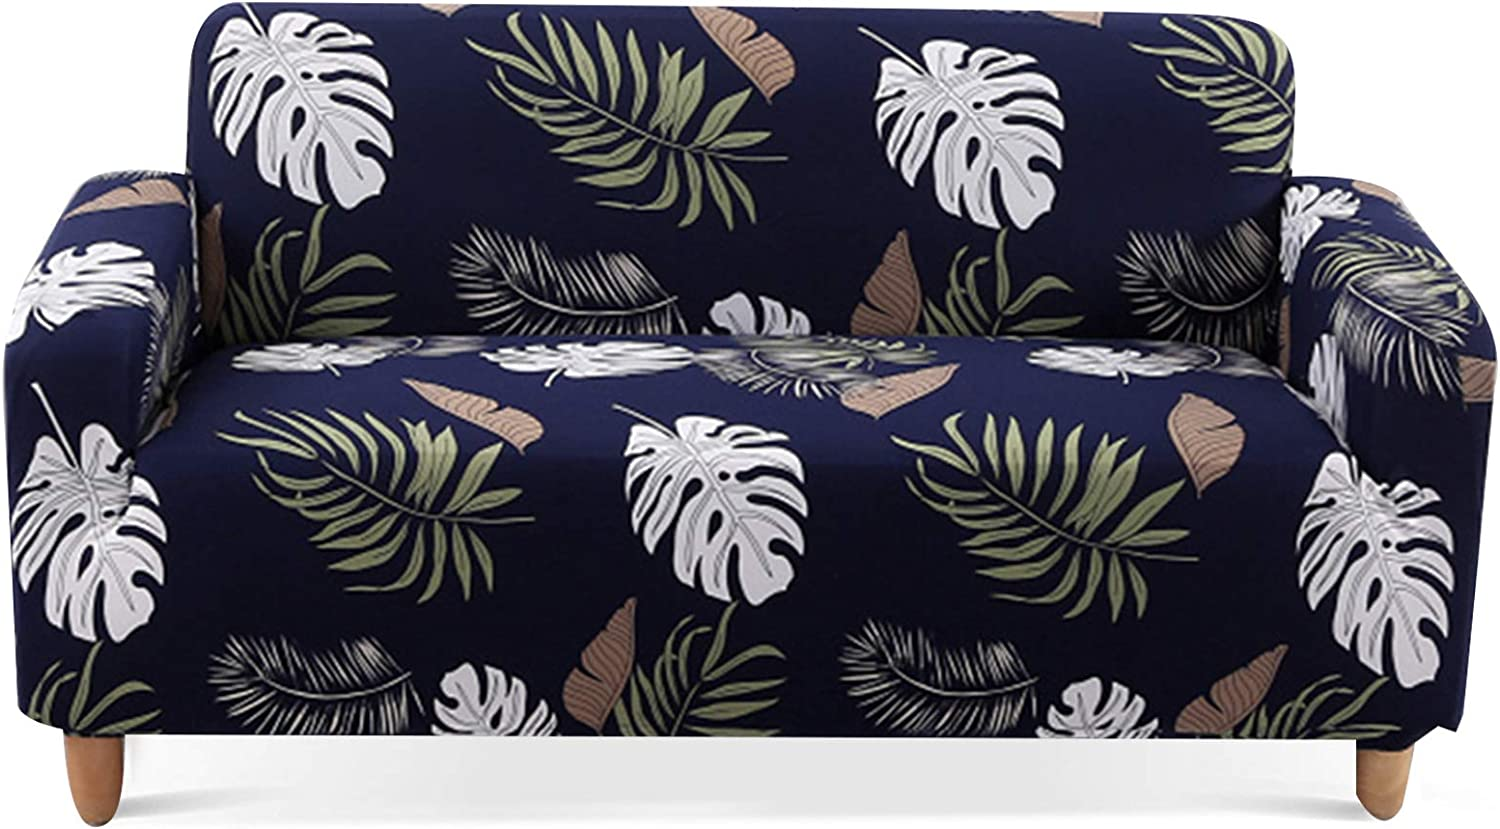 Jaoul All Cover 『1年保証』 Printed Elegant Floral High S Stretch Couch 今ダケ送料無料 Sofa